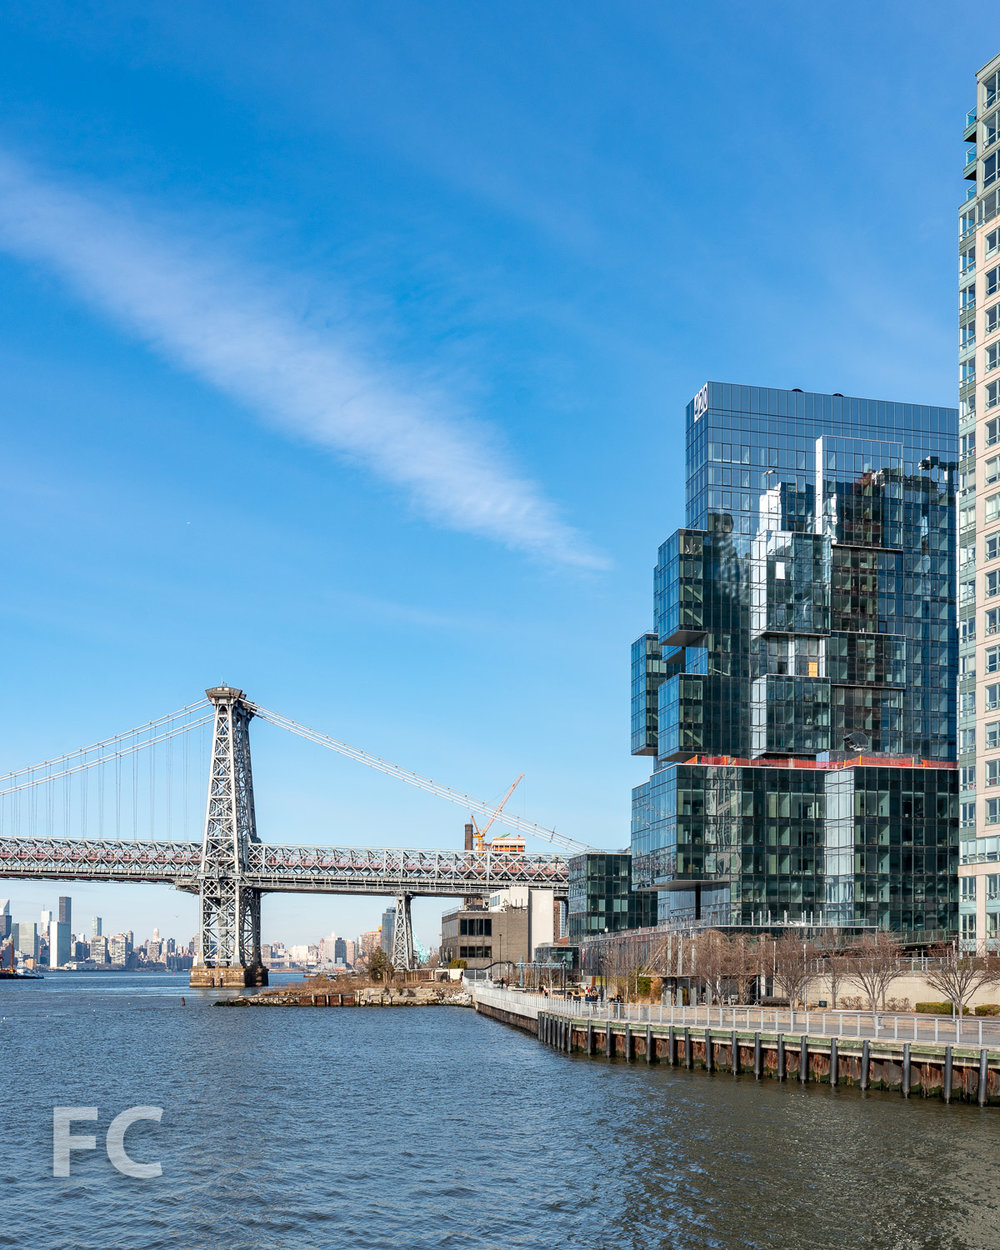 Southwest corner from the East River.